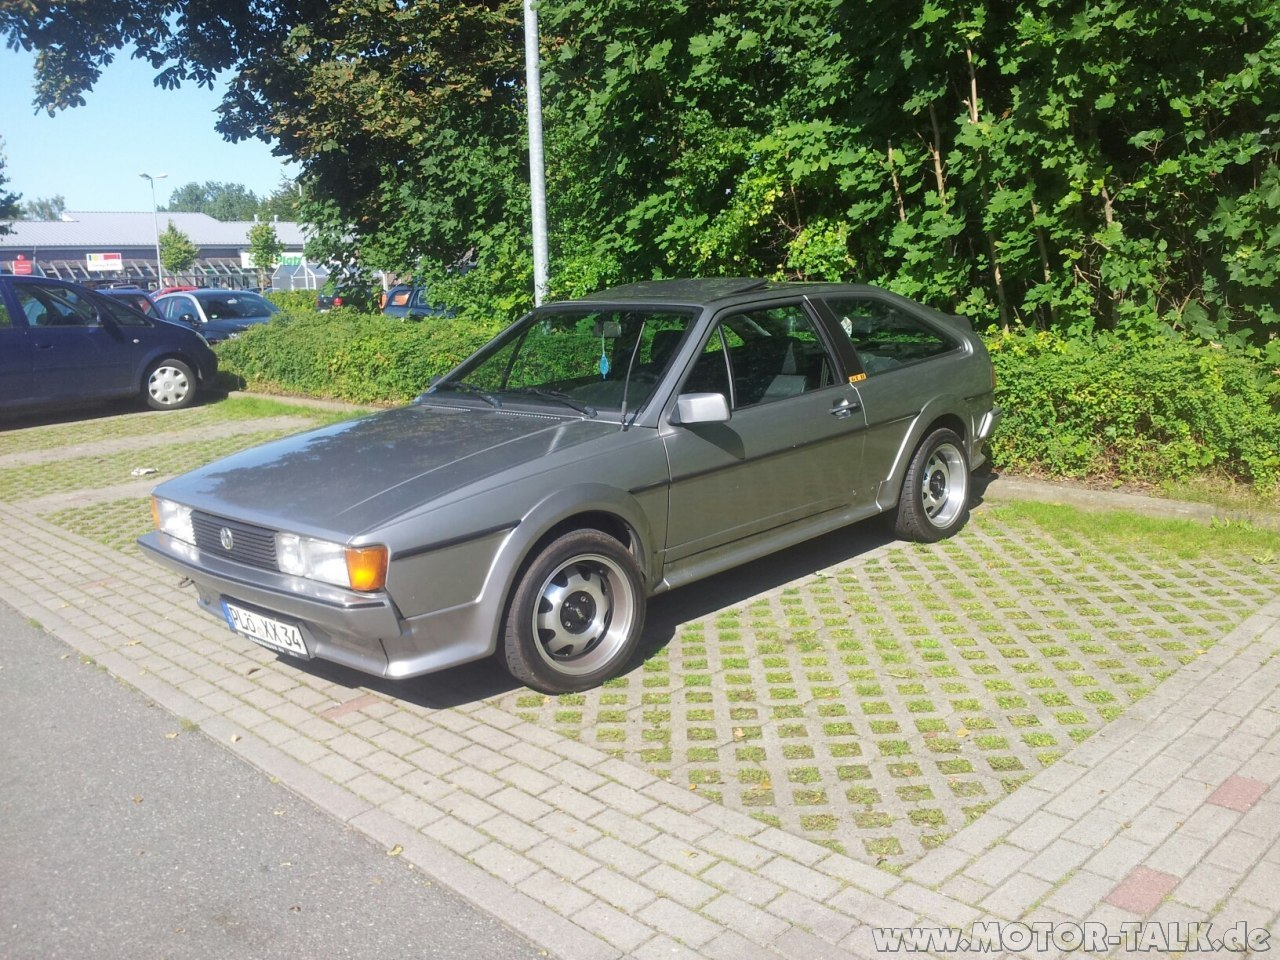 Volkswagen Scirocco 1.8 1991 photo - 5